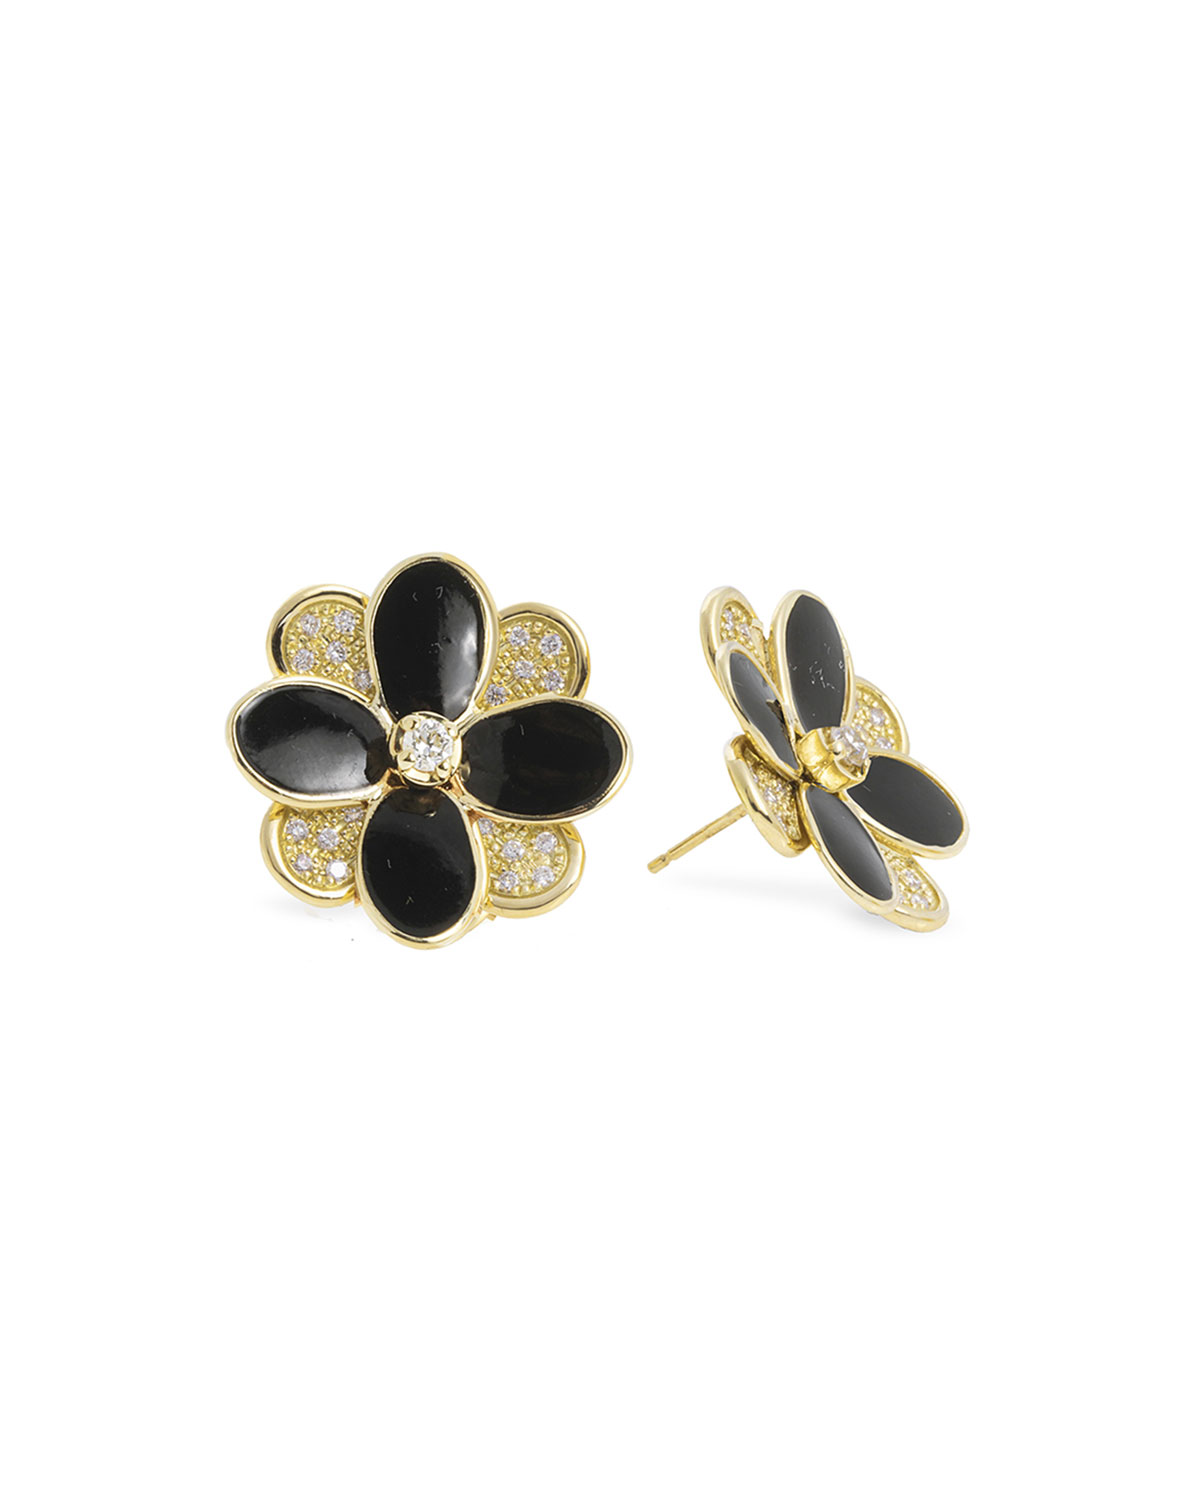 Marco Bicego Petali Enamel and Diamond Earrings